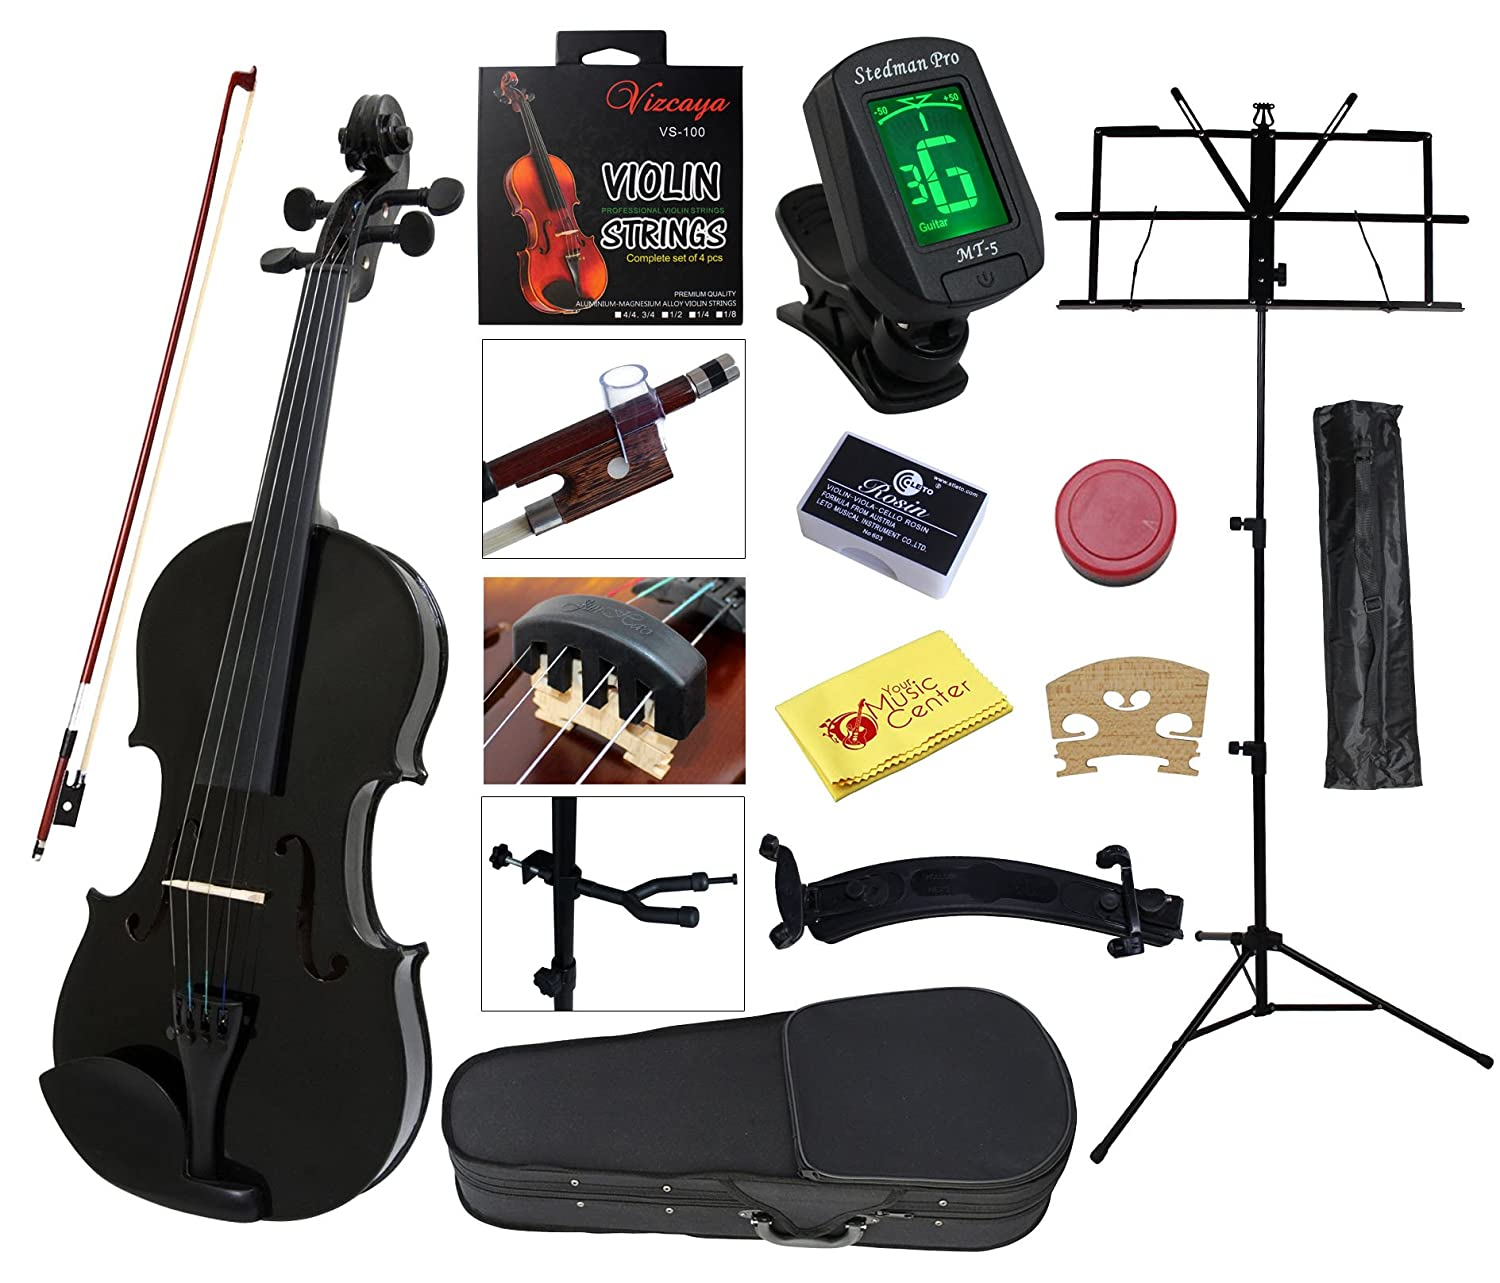 Amazon.com: YMC Full Size 4/4 Violin Starter Kit with Hard  Case,Bow,Rosin,Extra Strings,Shoulder Rest,Mute,Electronic  Tuner,Pinkinest,Polish cloth,Violin ...